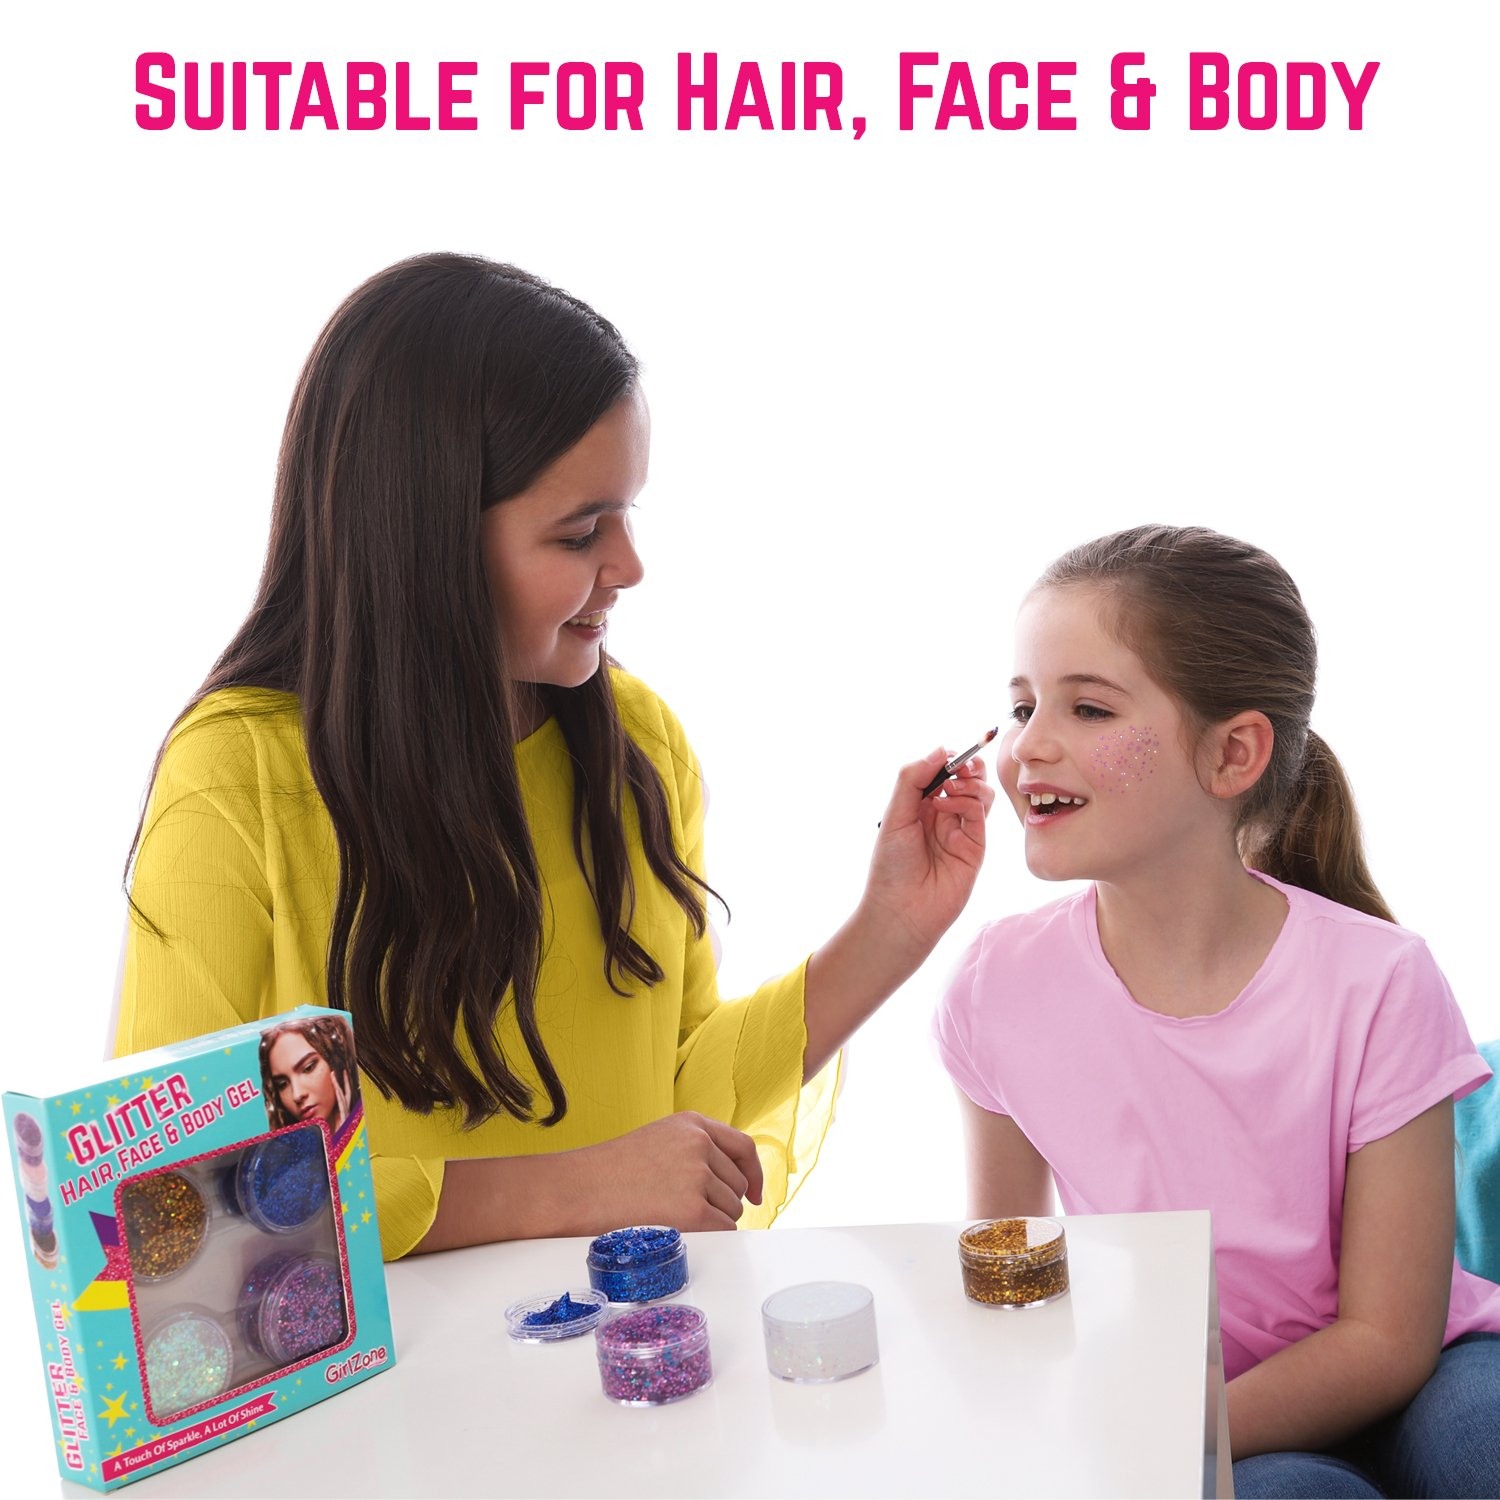 GirlZone GIFTS FOR GIRLS: Face, Hair & Body Cosmetic Glitter Makeup. Great Gift, Birthday Present Idea For Girls 4 5 6 7 8 9 10 years old plus. by GirlZone (Image #2)